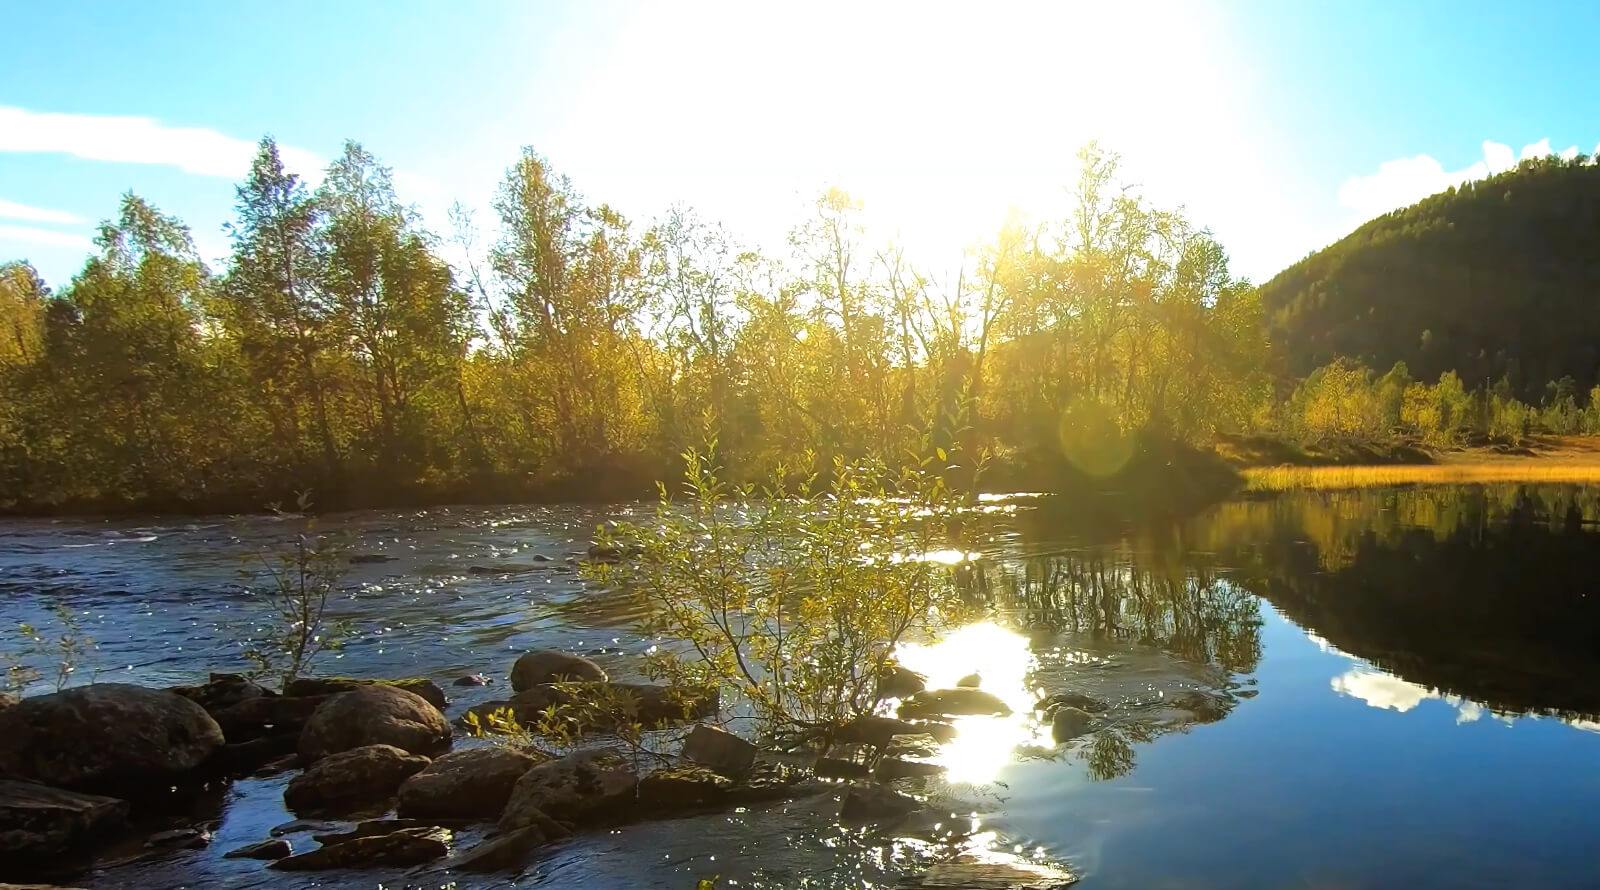 stream with rocks and trees at sunrise